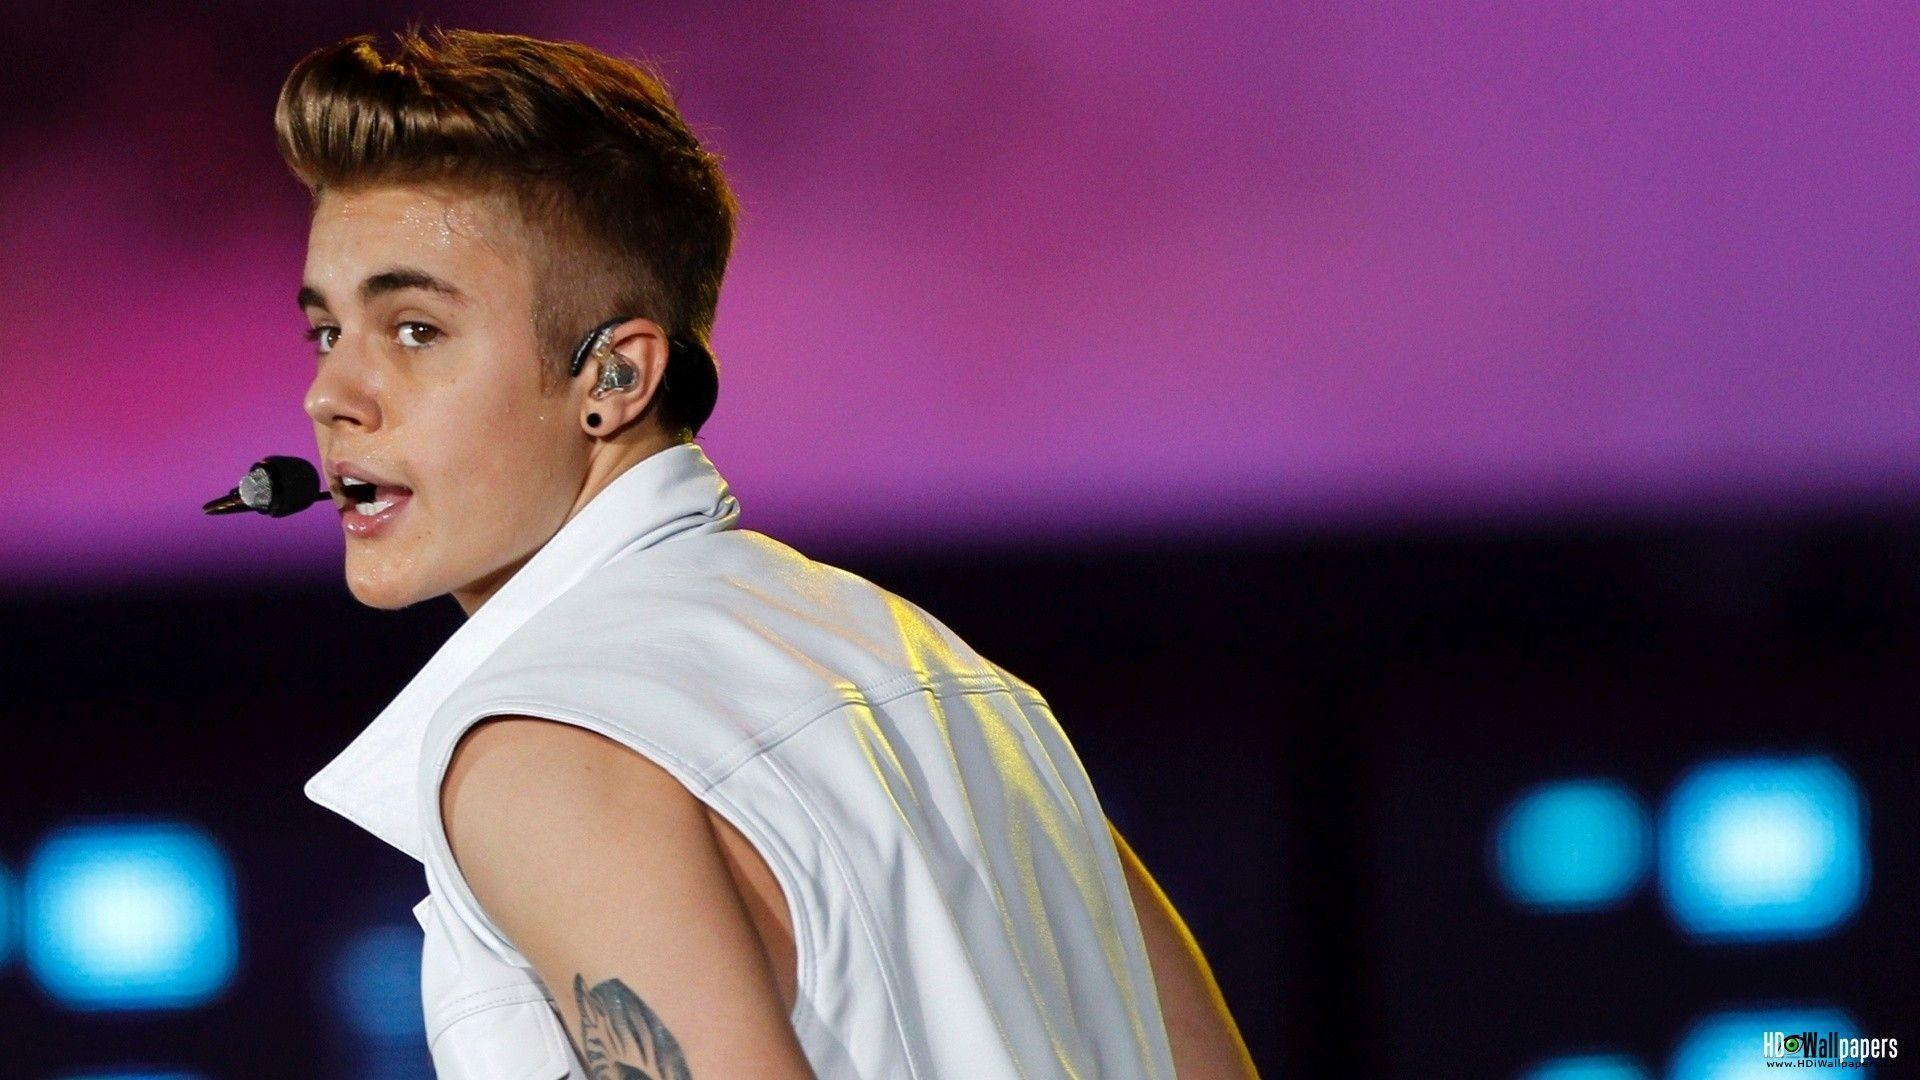 Justin Bieber HD Wallpapers 2014 1080p Latest Wallpapers